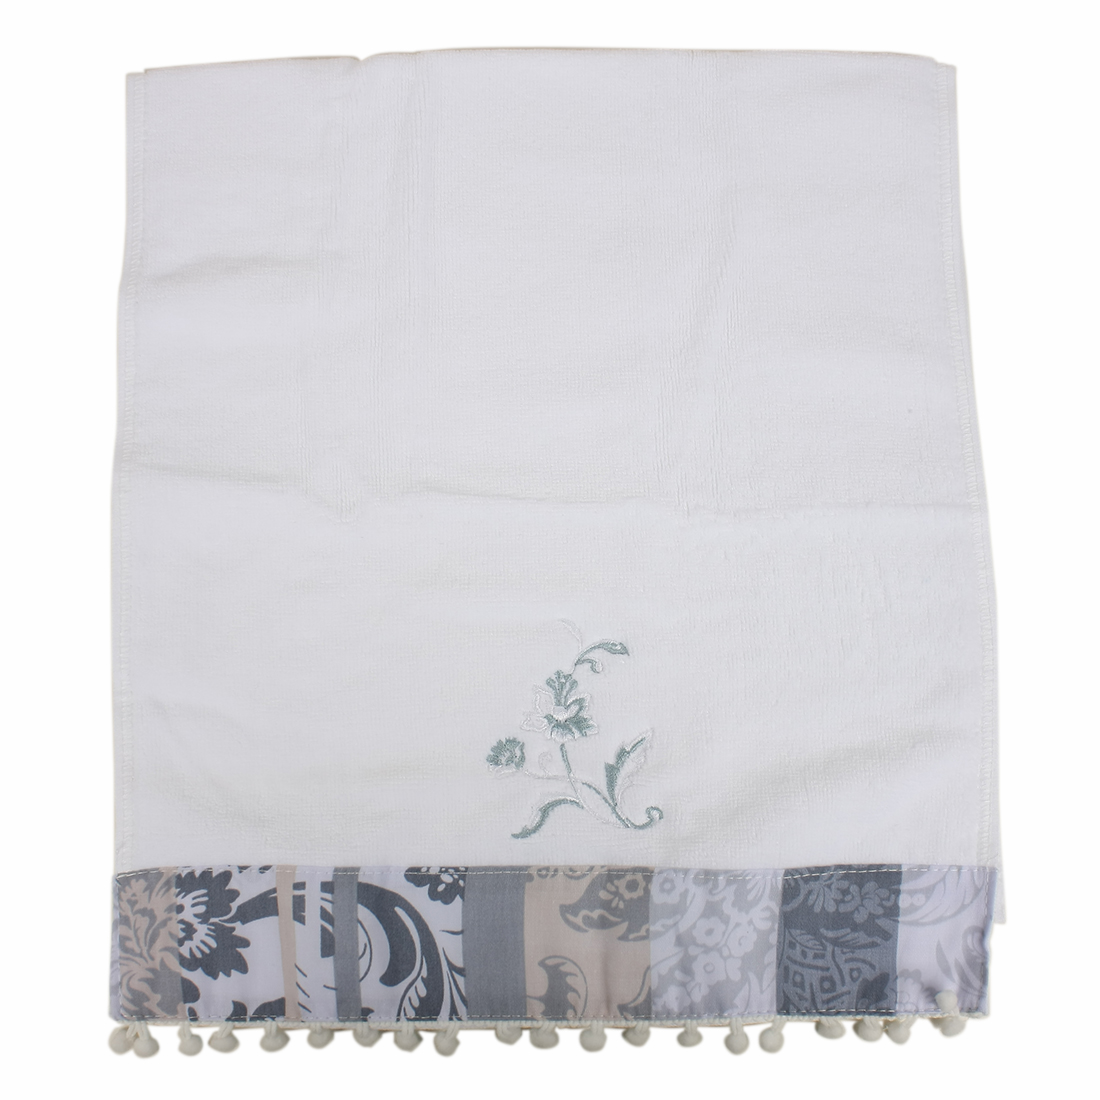 Floral Pattern Rectangle Soft Combed Cotton Towel Bath Towel